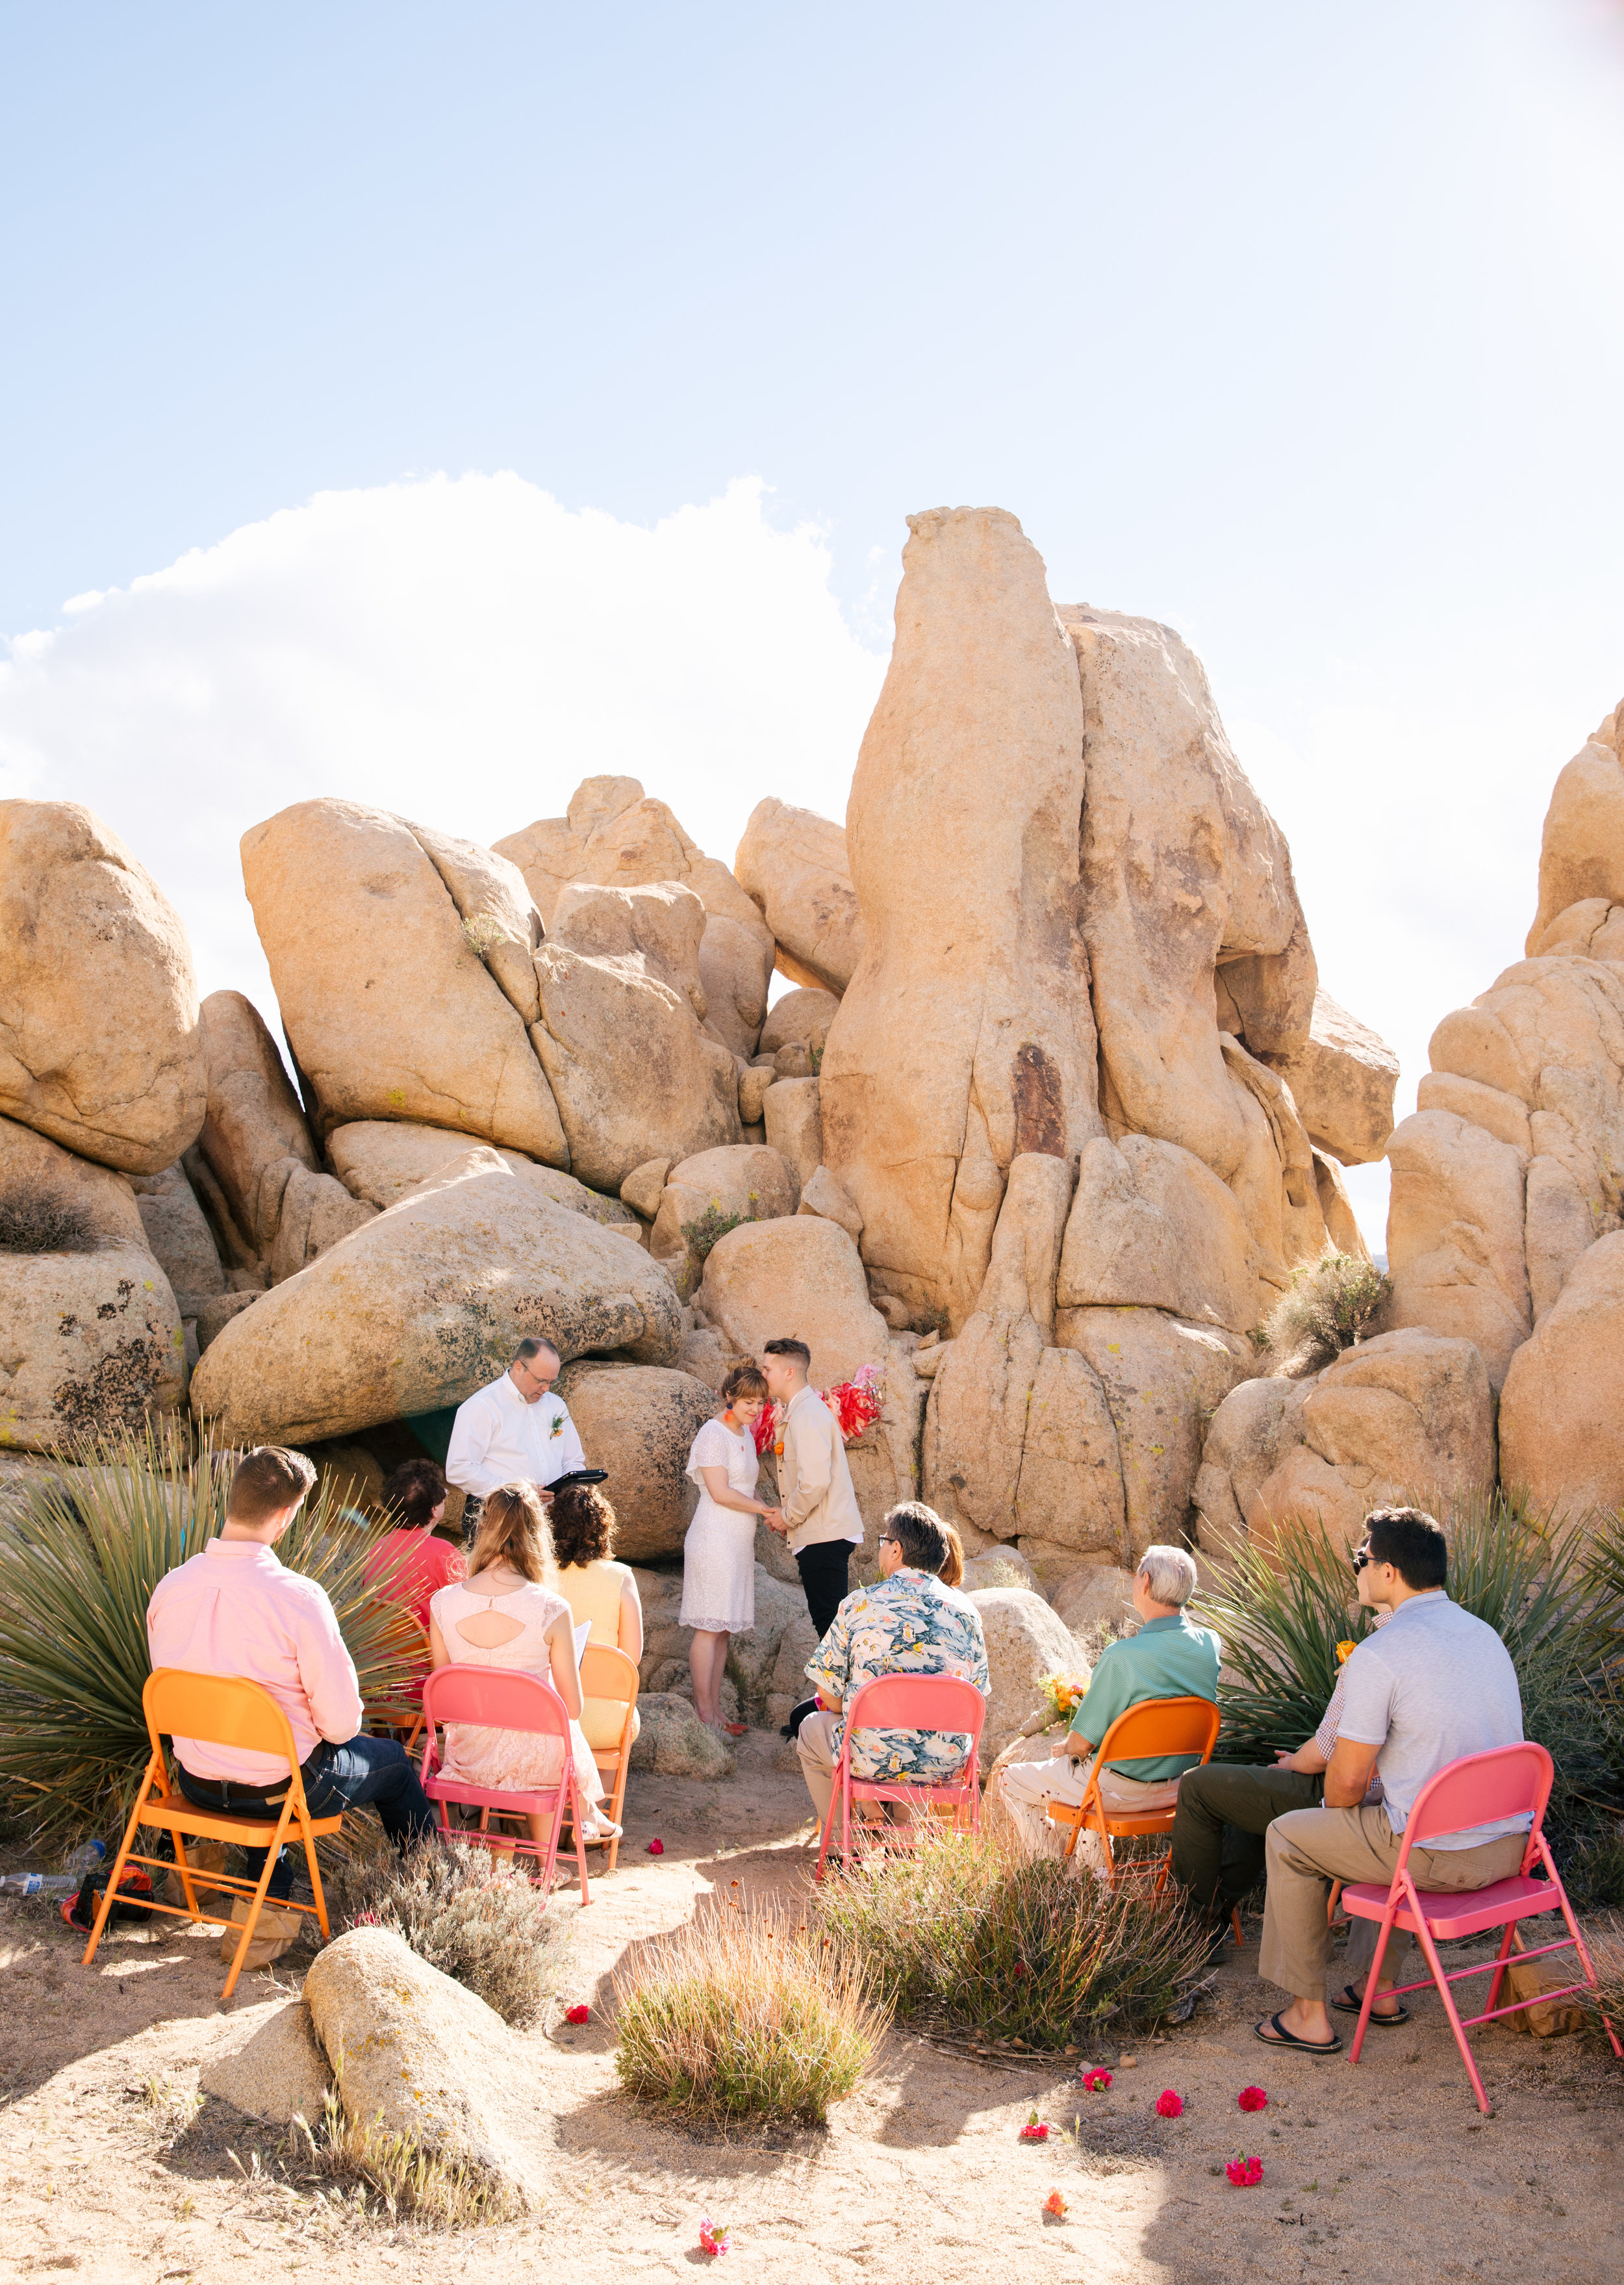 Our 13 person wedding in Joshua Tree. Photo courtesy of Jenn Emerling, our rad wedding photographer!!